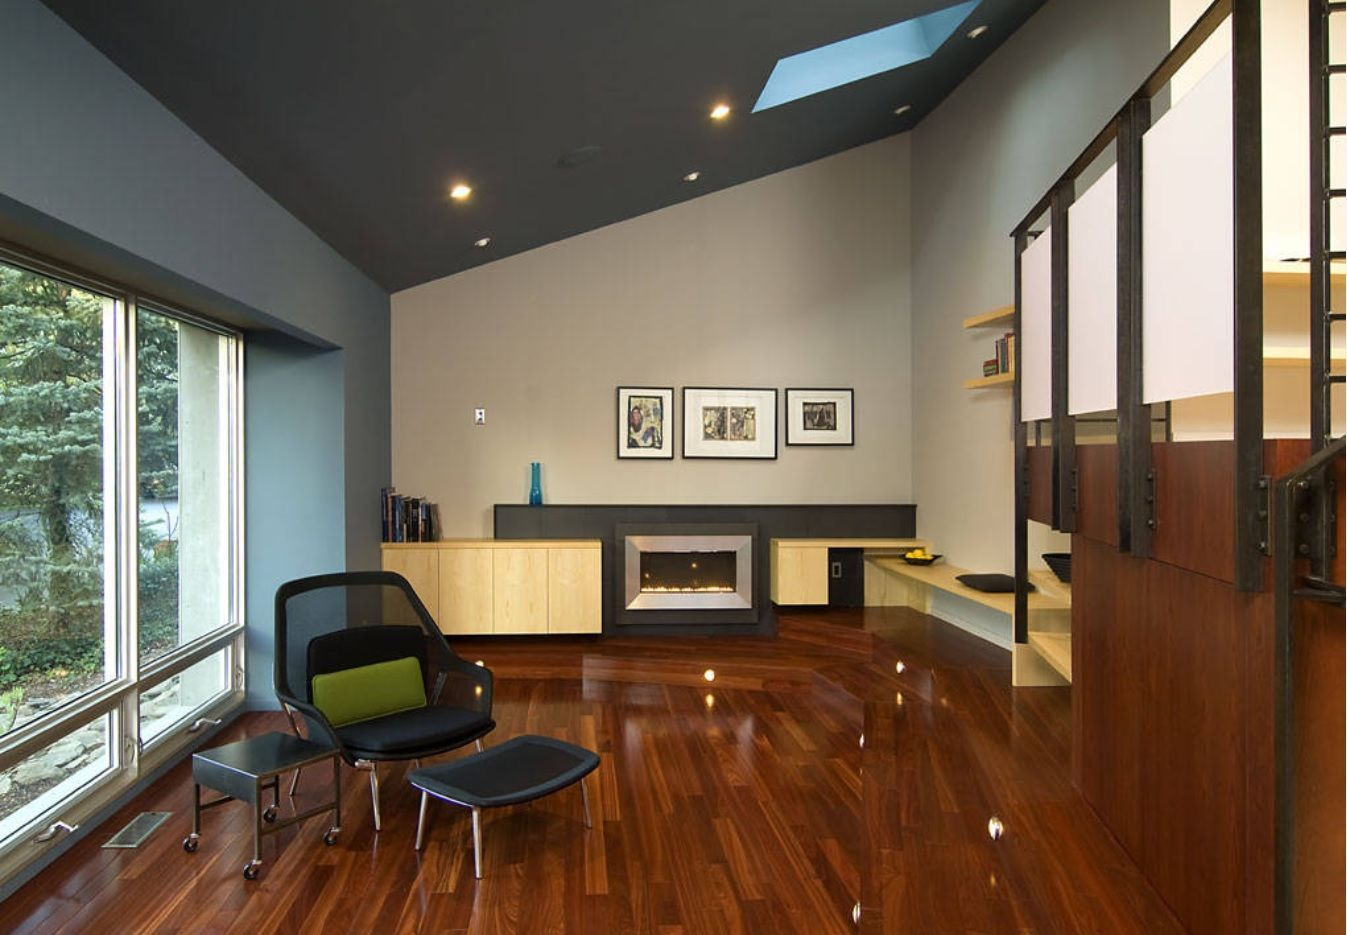 15+ Living Room Lounge Decoration Photos. Dark ceiling slant in the modern loft styled room with dark glancing wooden floor